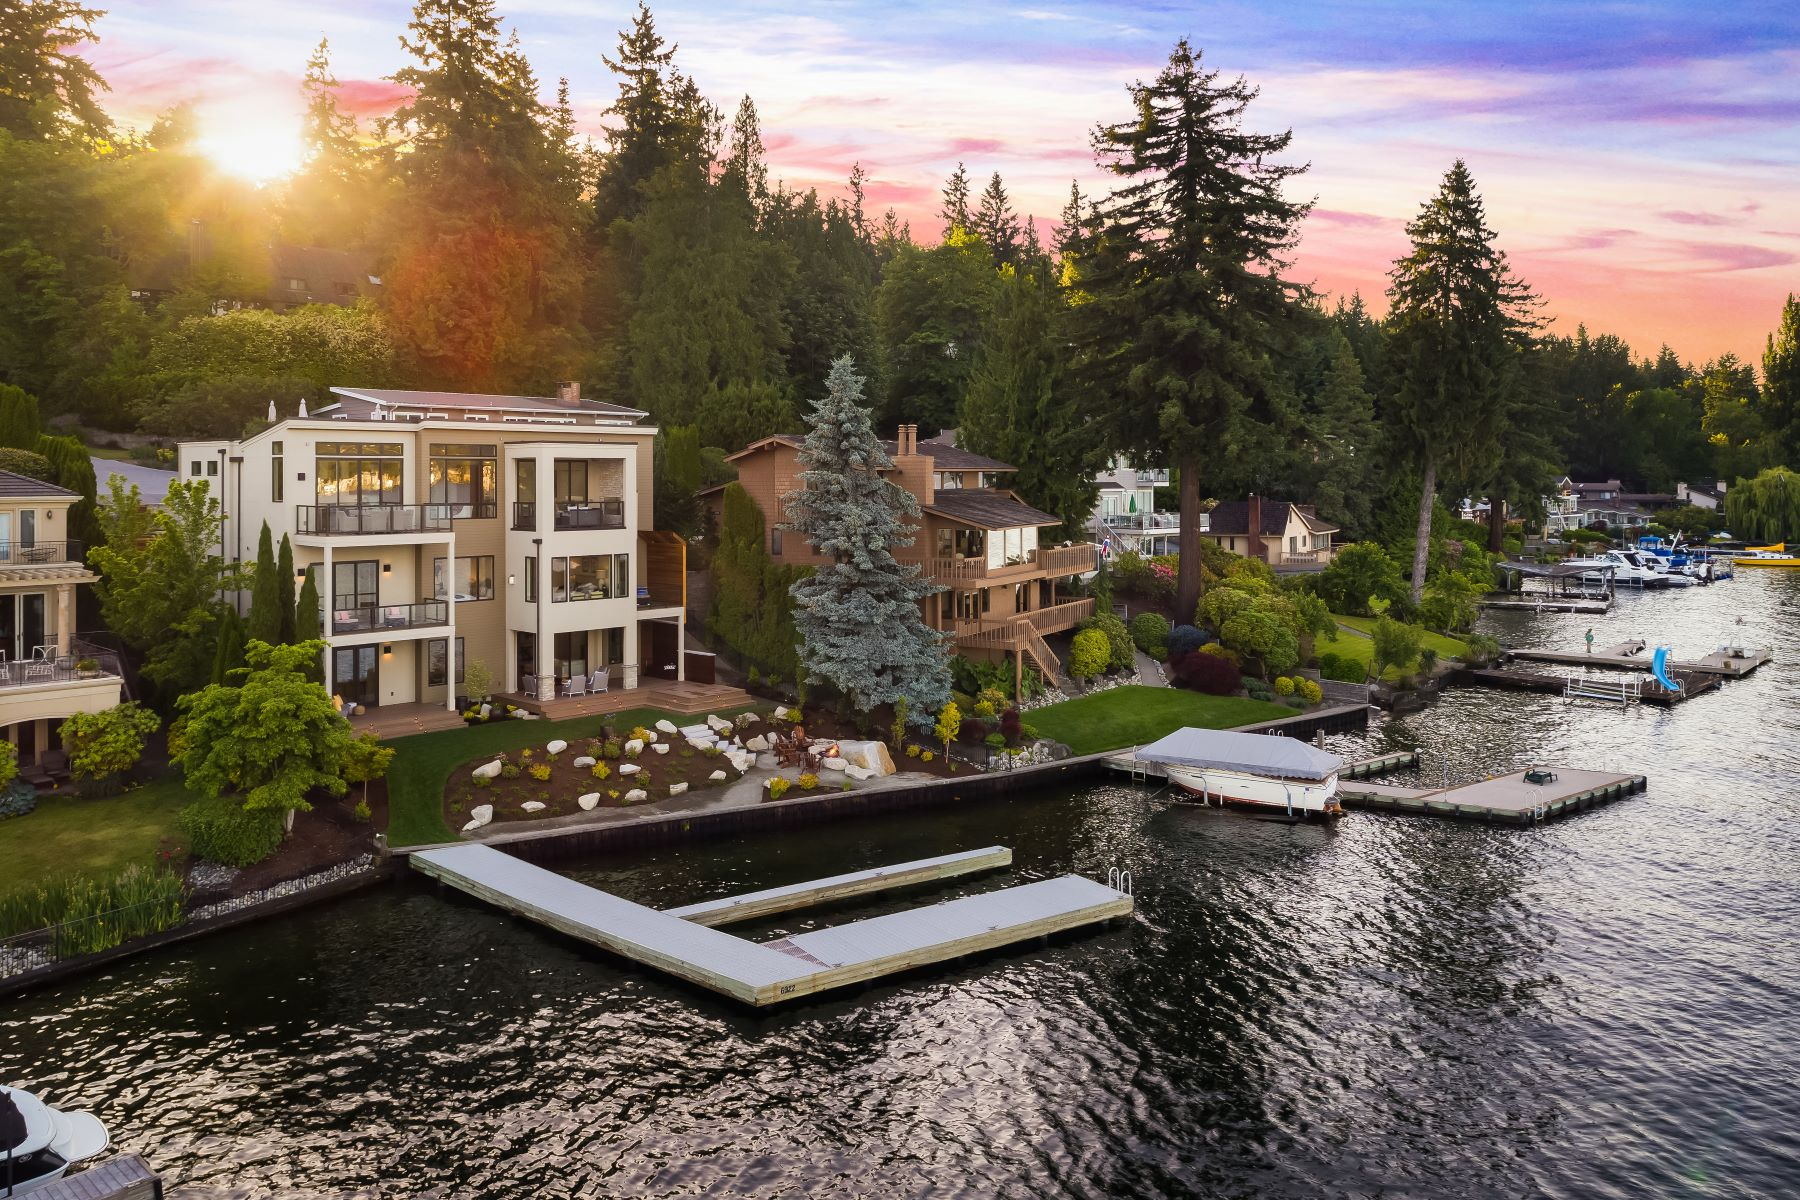 Single Family Homes for Sale at New Construction Northwest Contemporary Waterfront 6922 96th Ave SE, Mercer Island, Washington 98040 United States